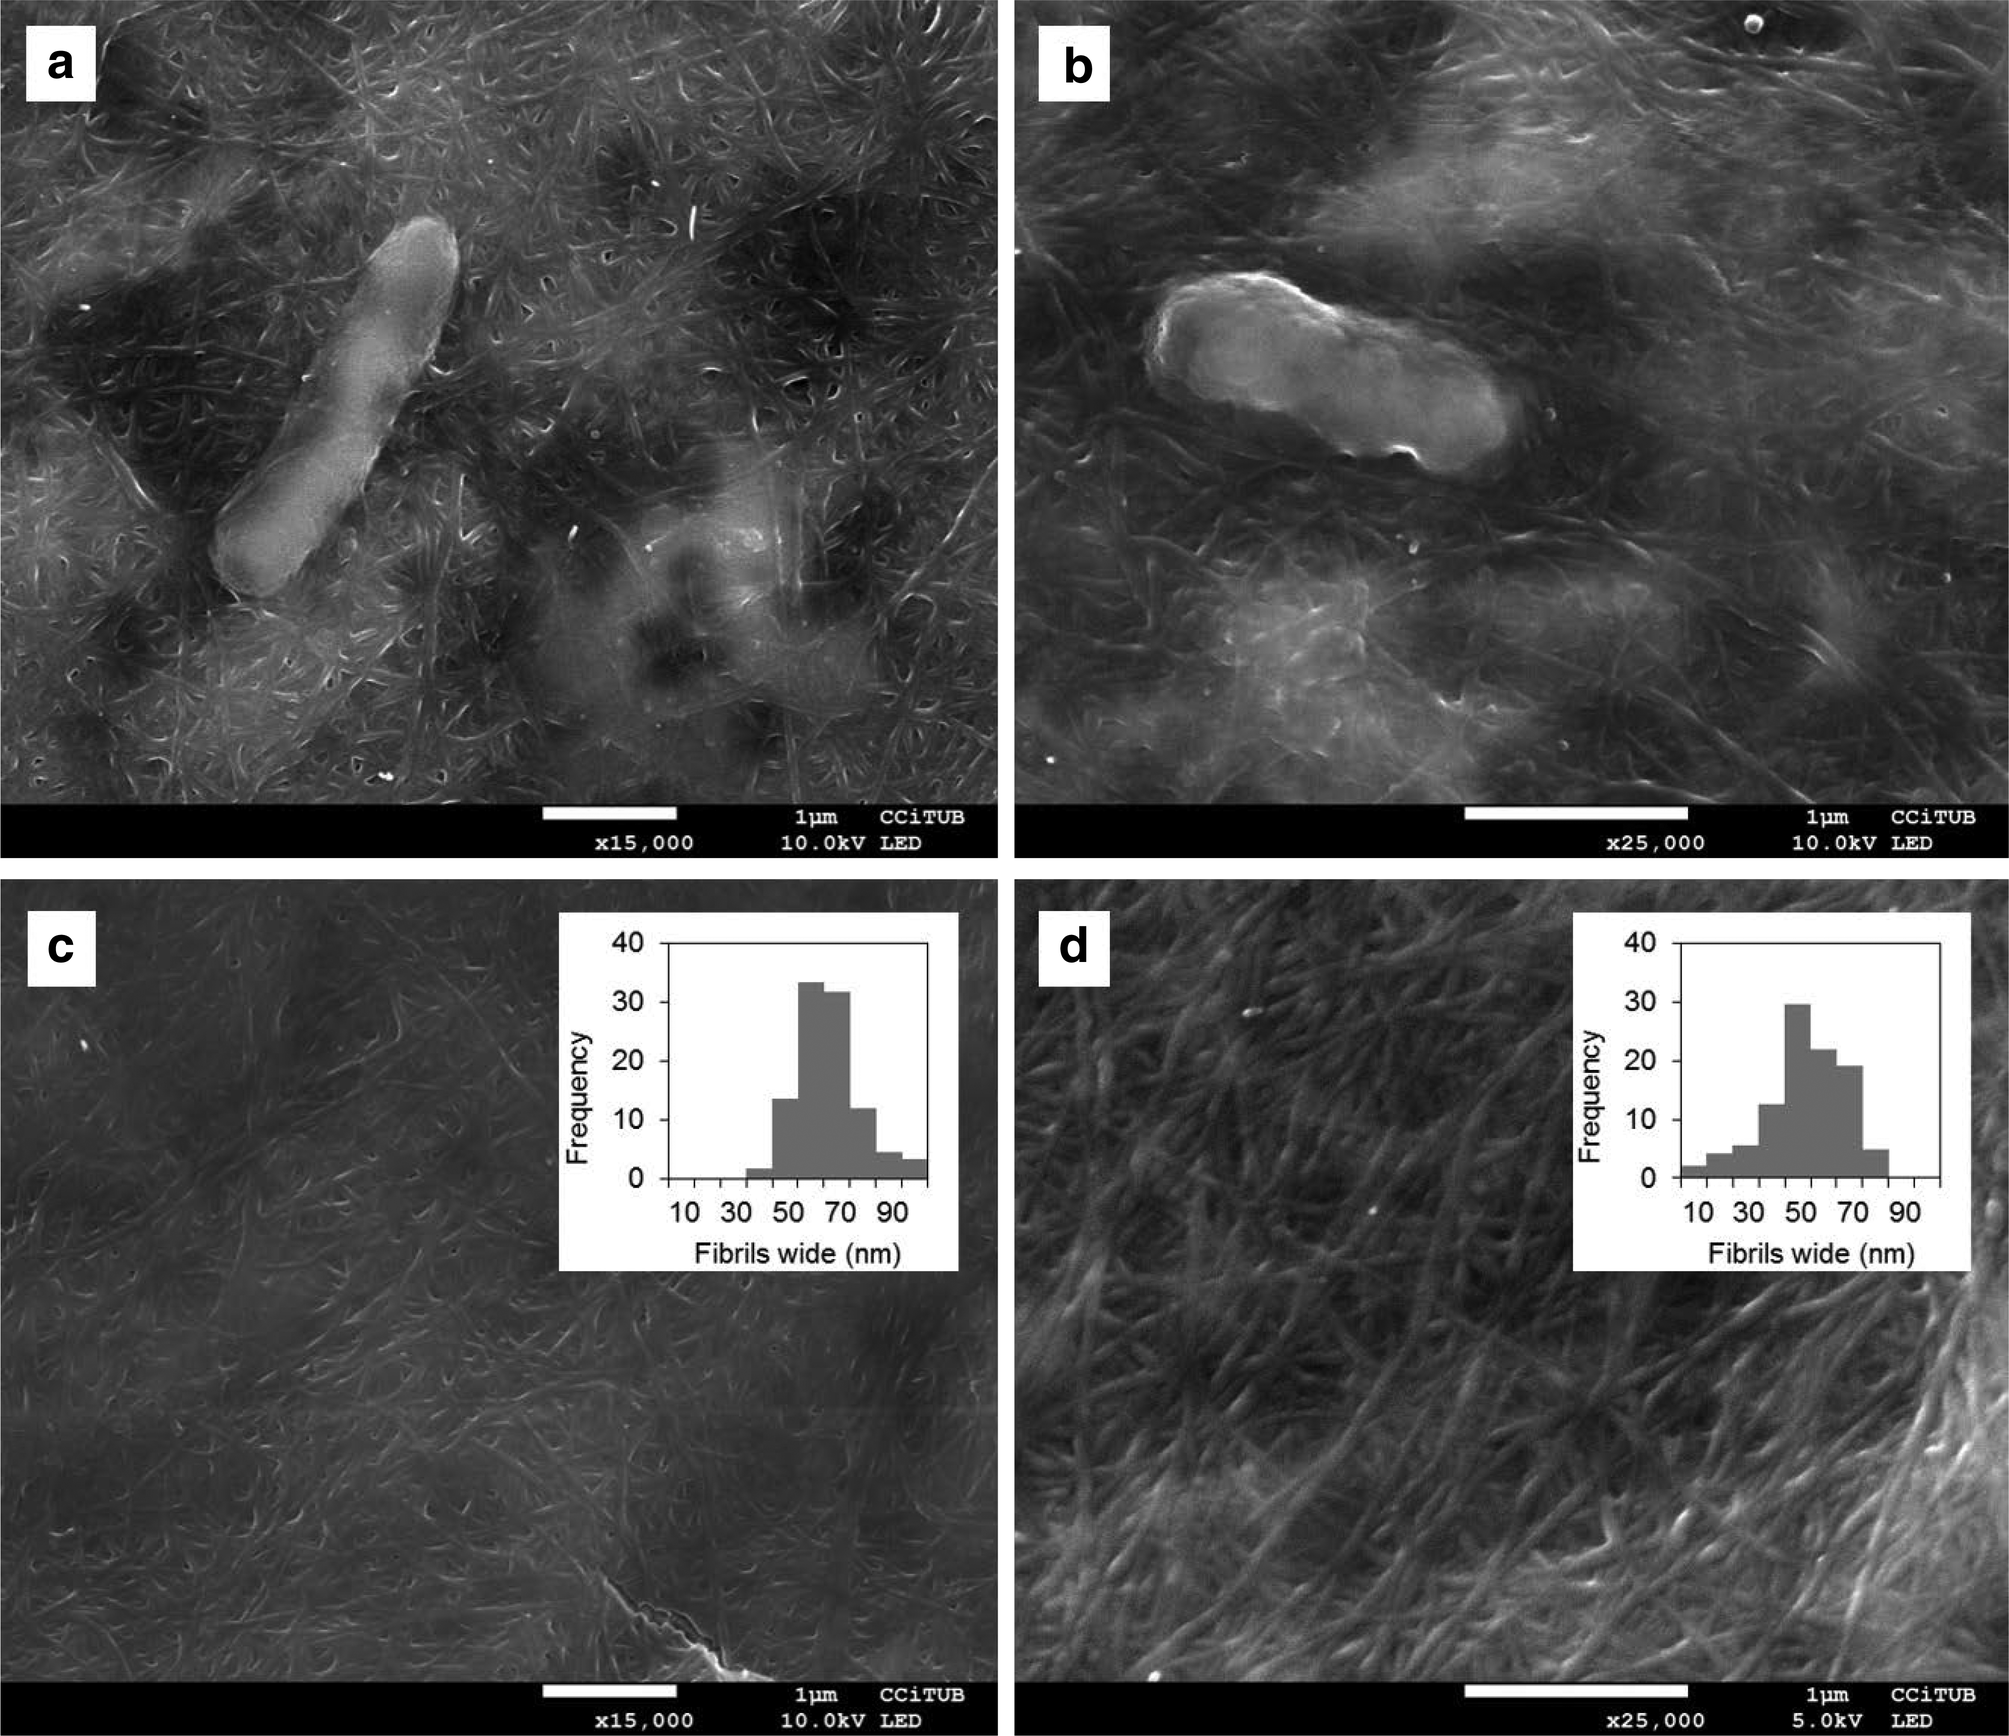 Microbial Cellulose from a Komagataeibacter intermedius Strain